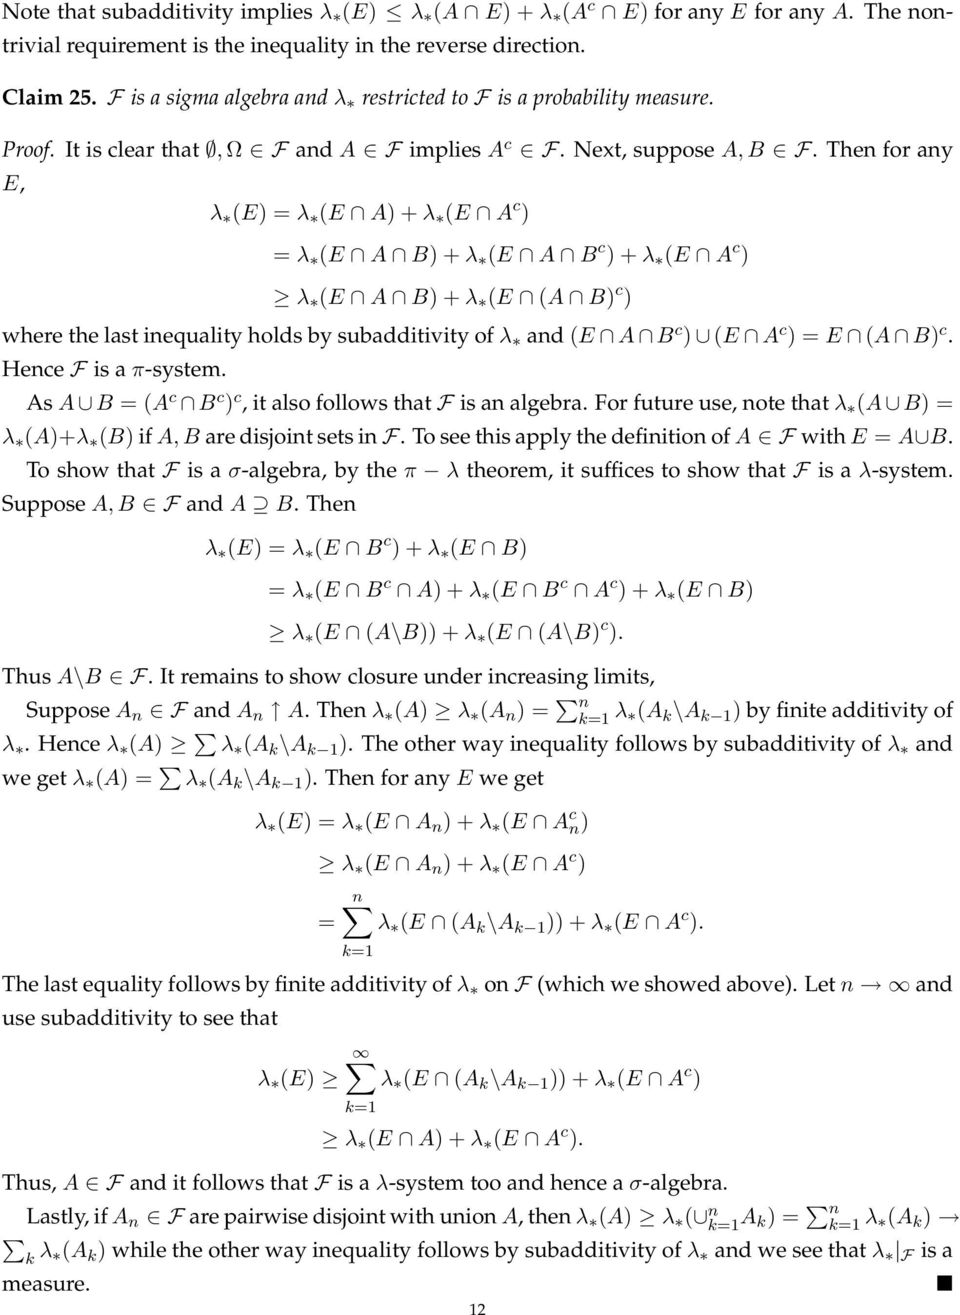 billingsley probability and measure pdf